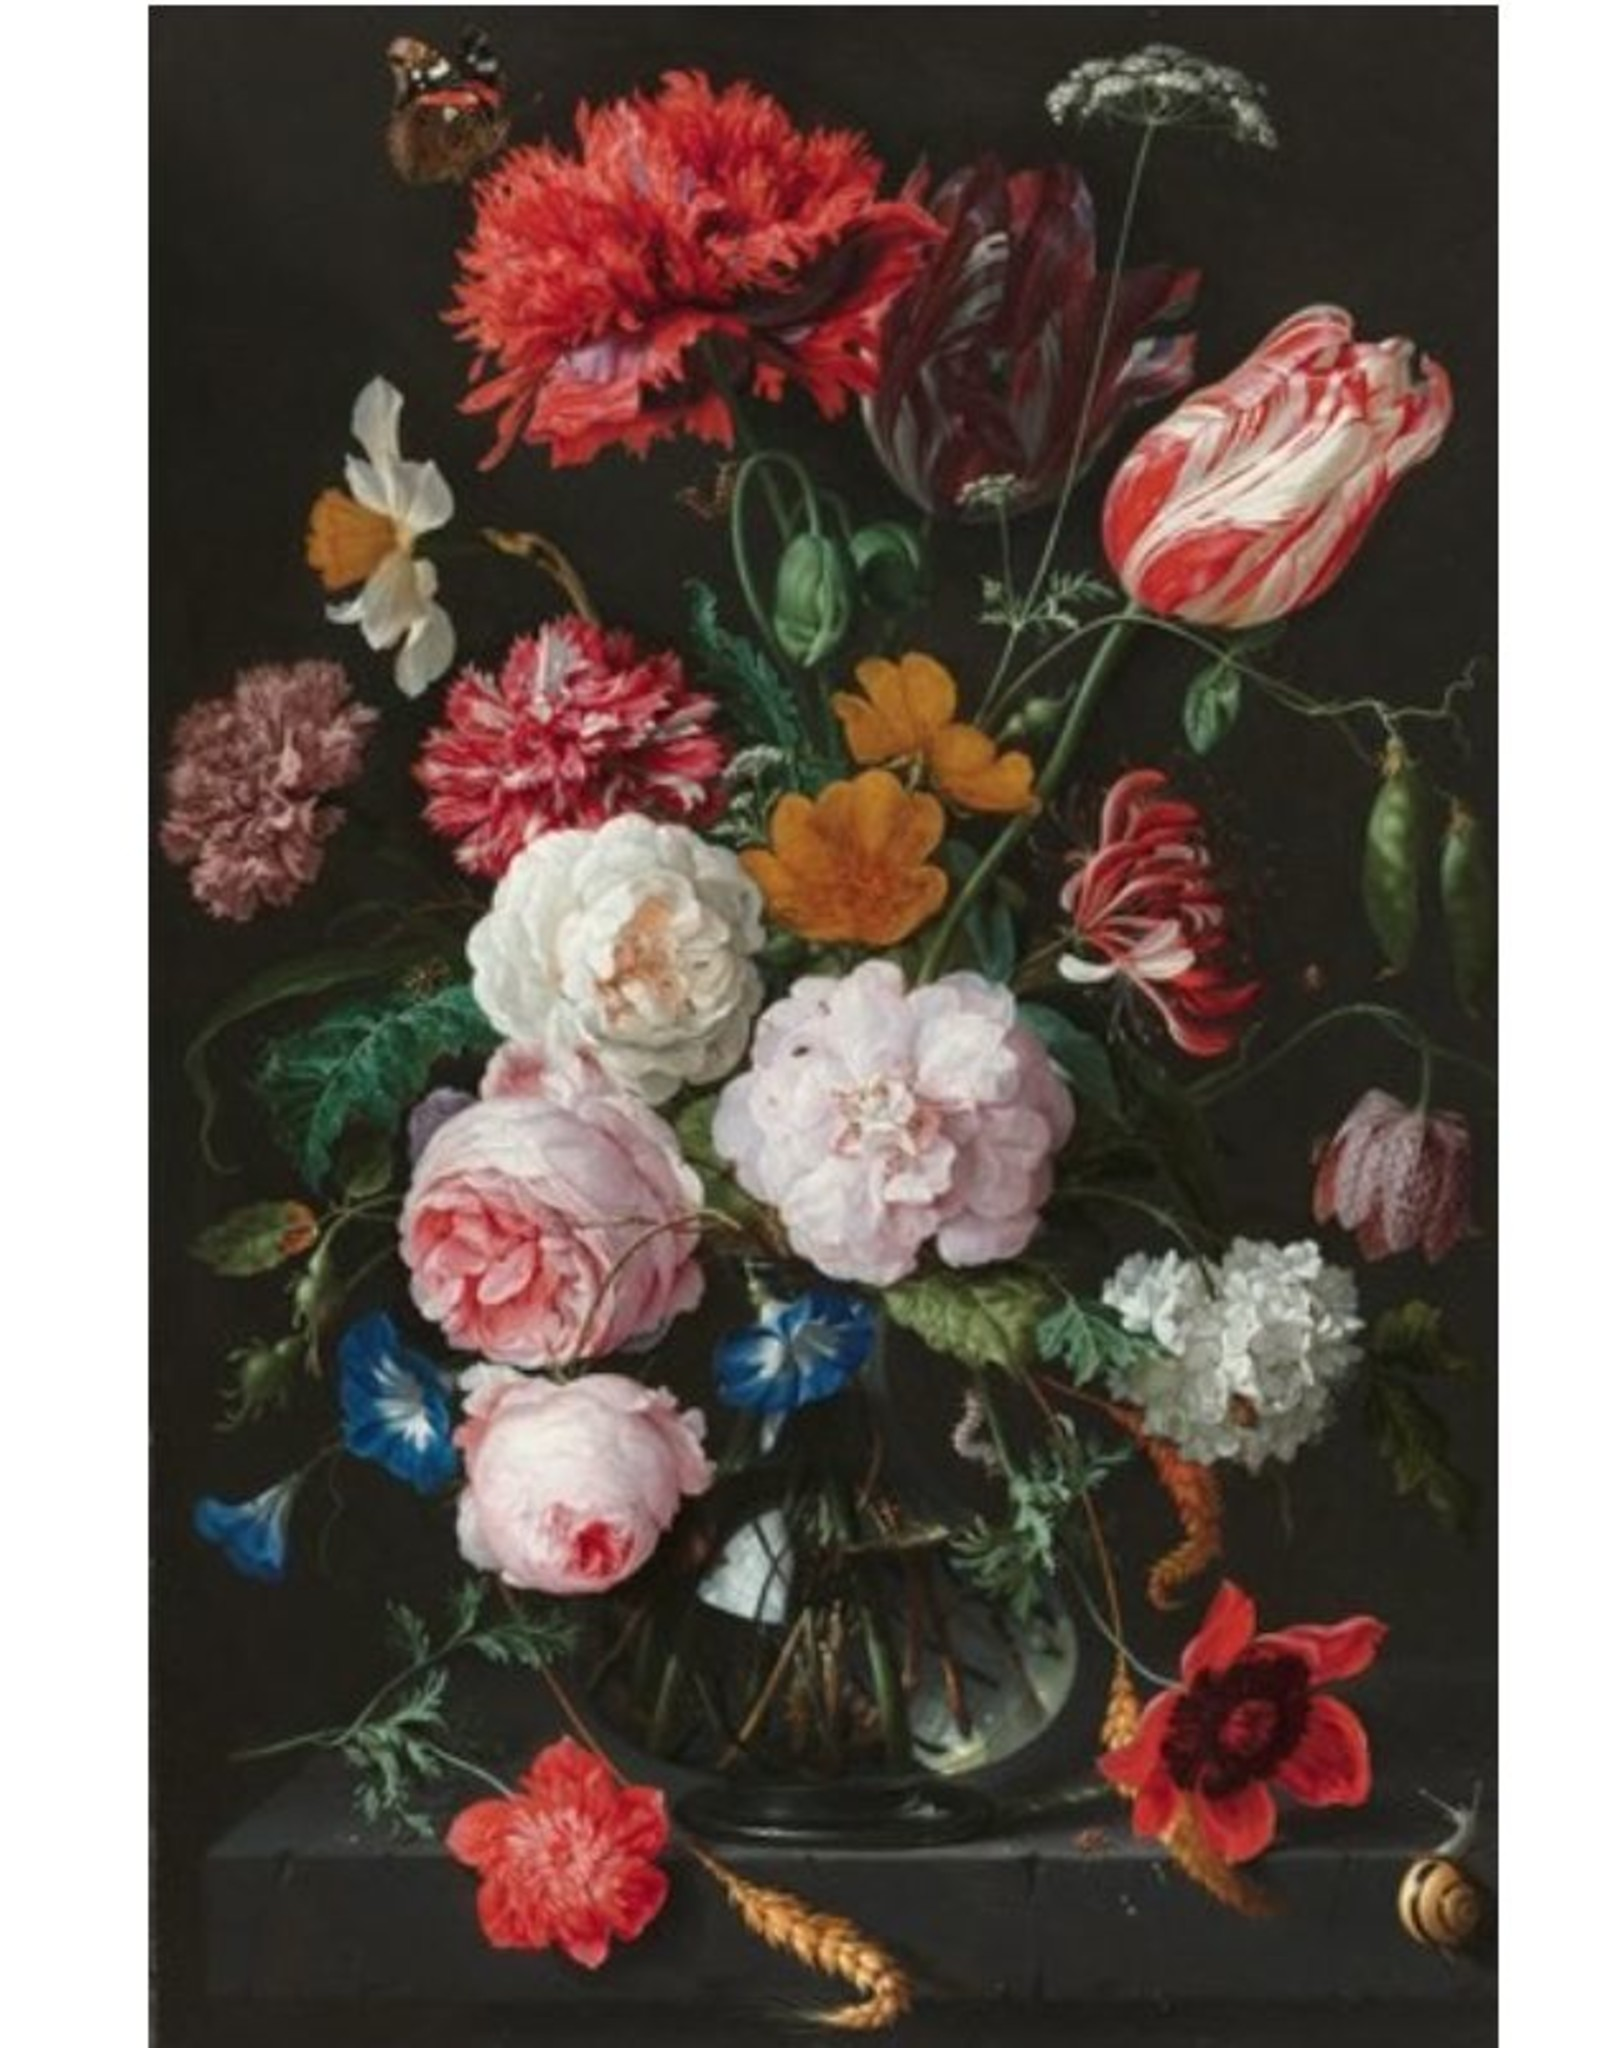 IXXI Still Life with Flowers in a Glass Vase - 120cm x 180cm